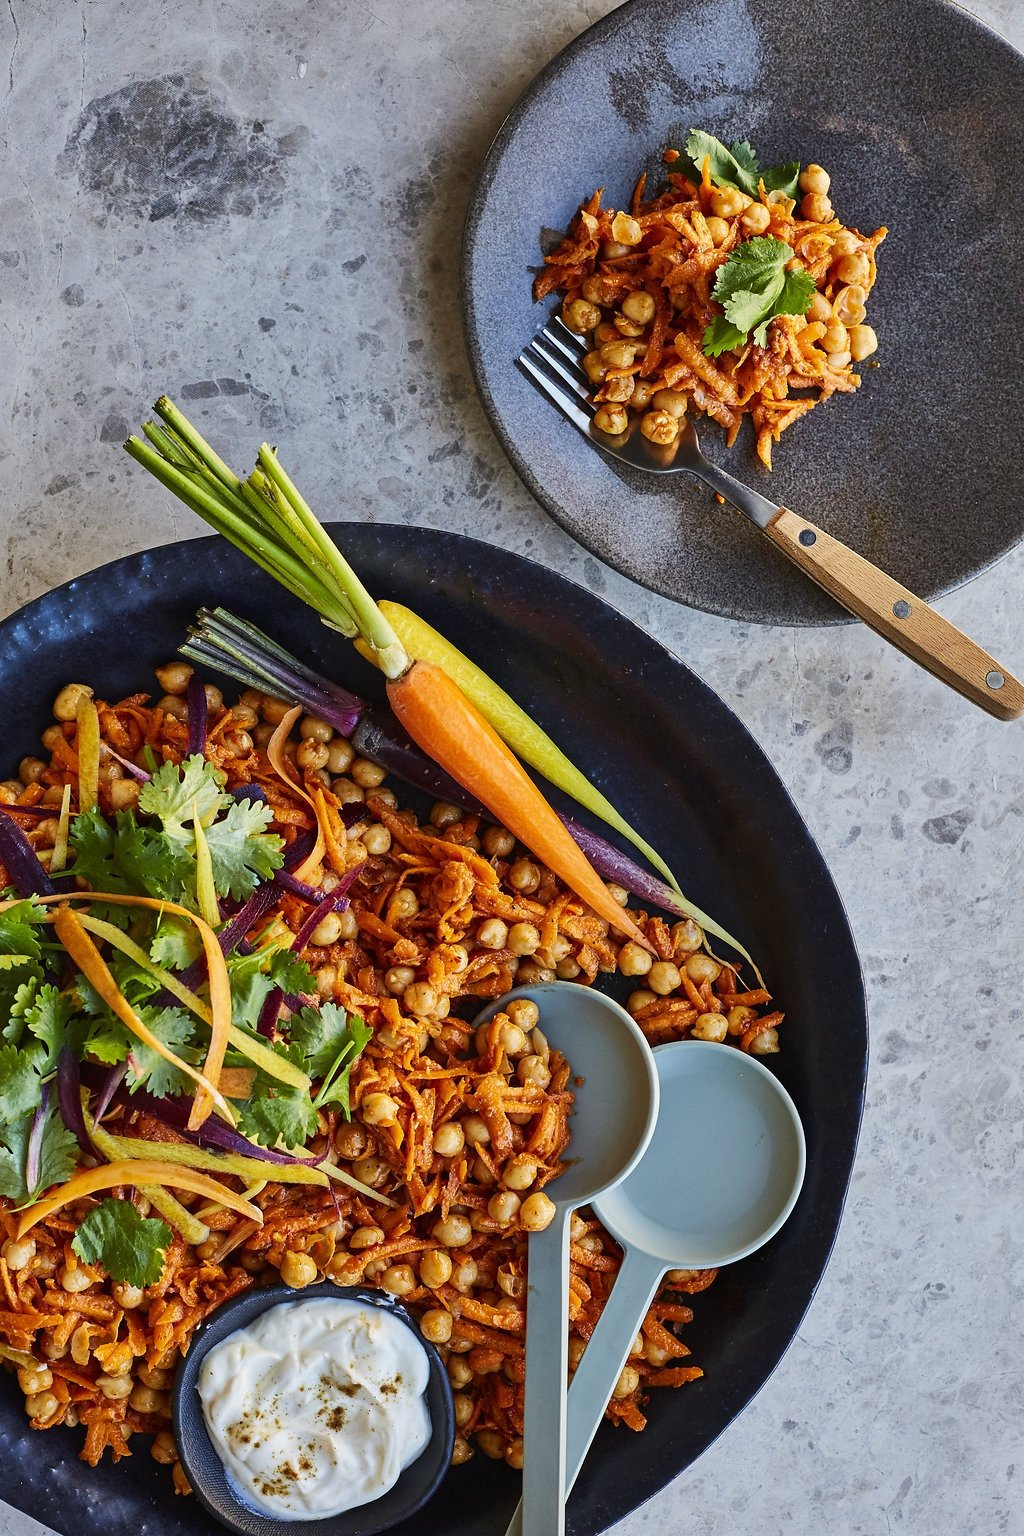 Carrot And Chickpea Salad With Harissa Paste